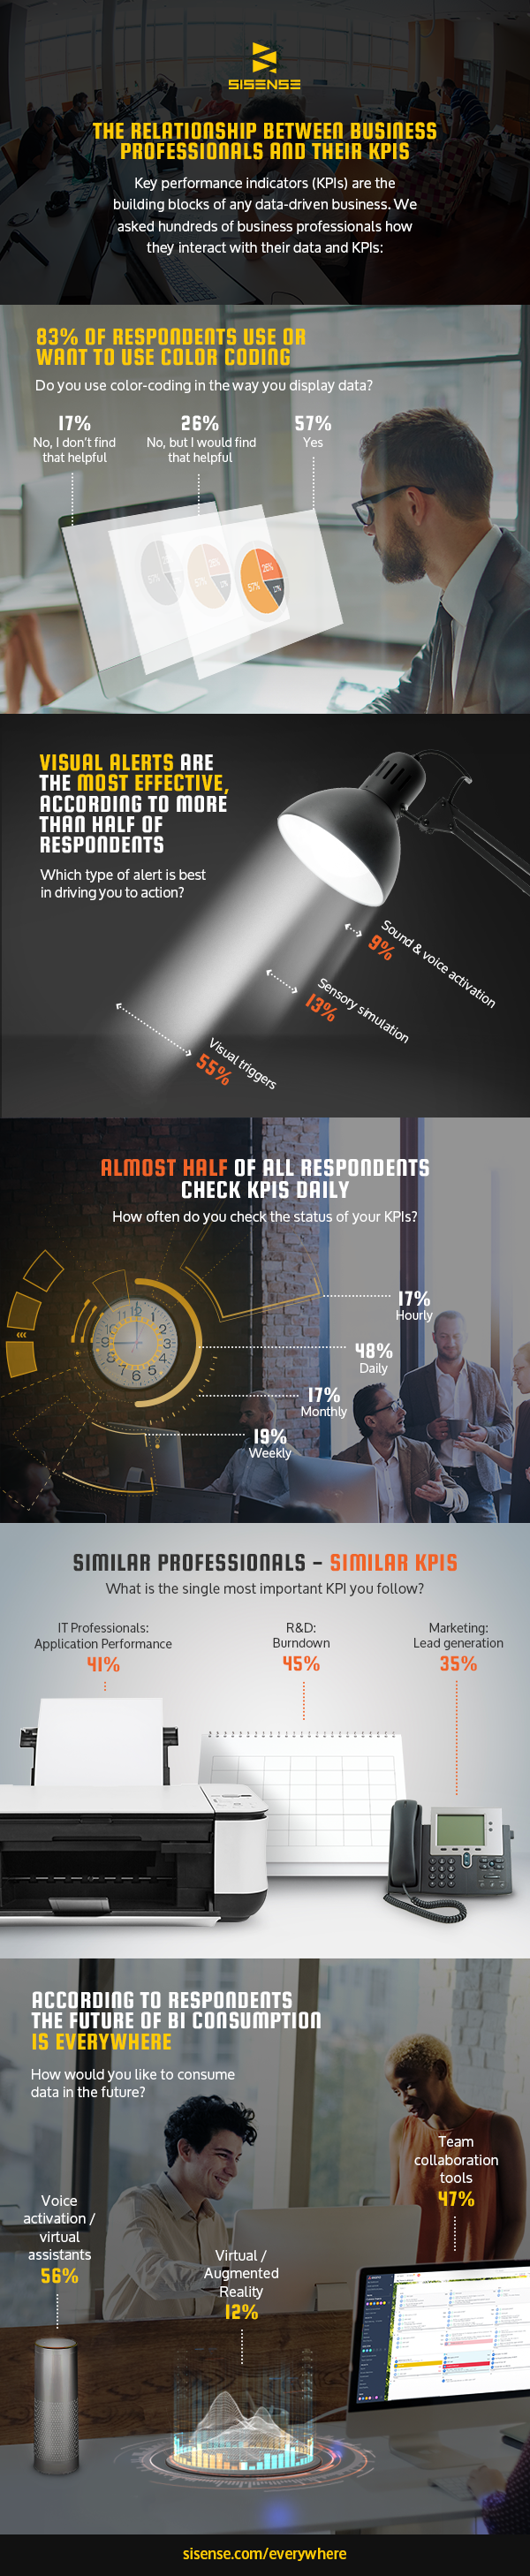 Infographic: The Relationship Between Business Professionals and KPIs